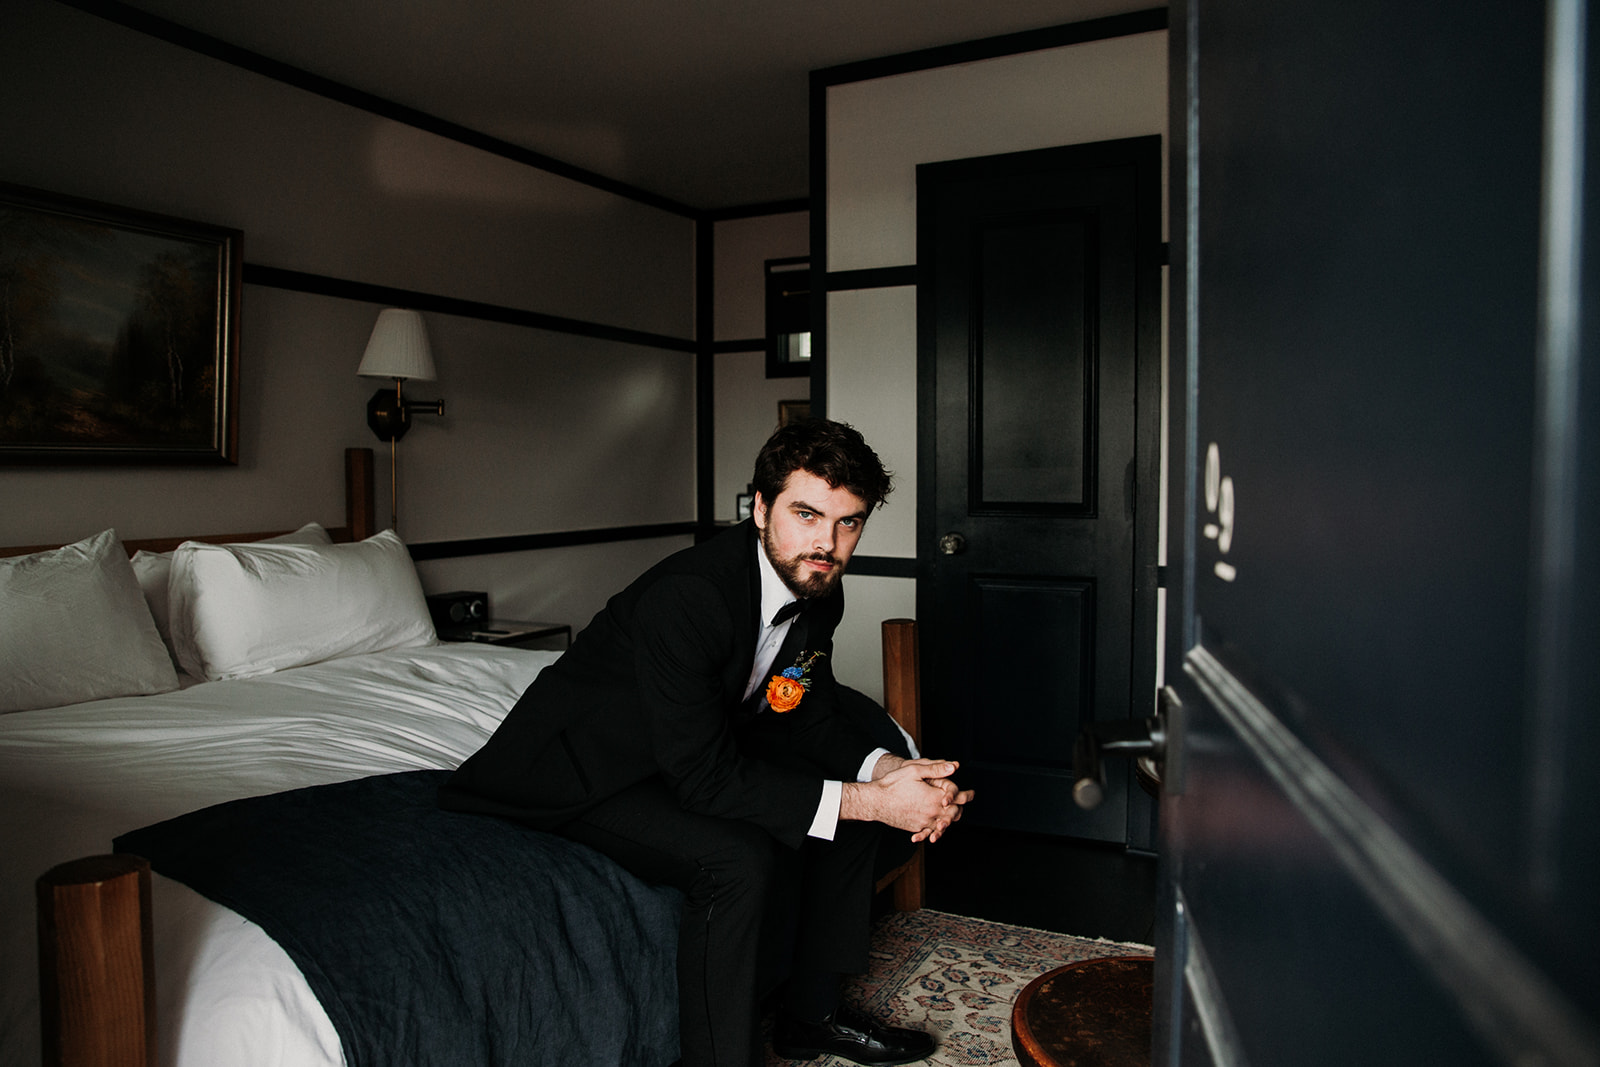 Groom in suit sitting on a bed